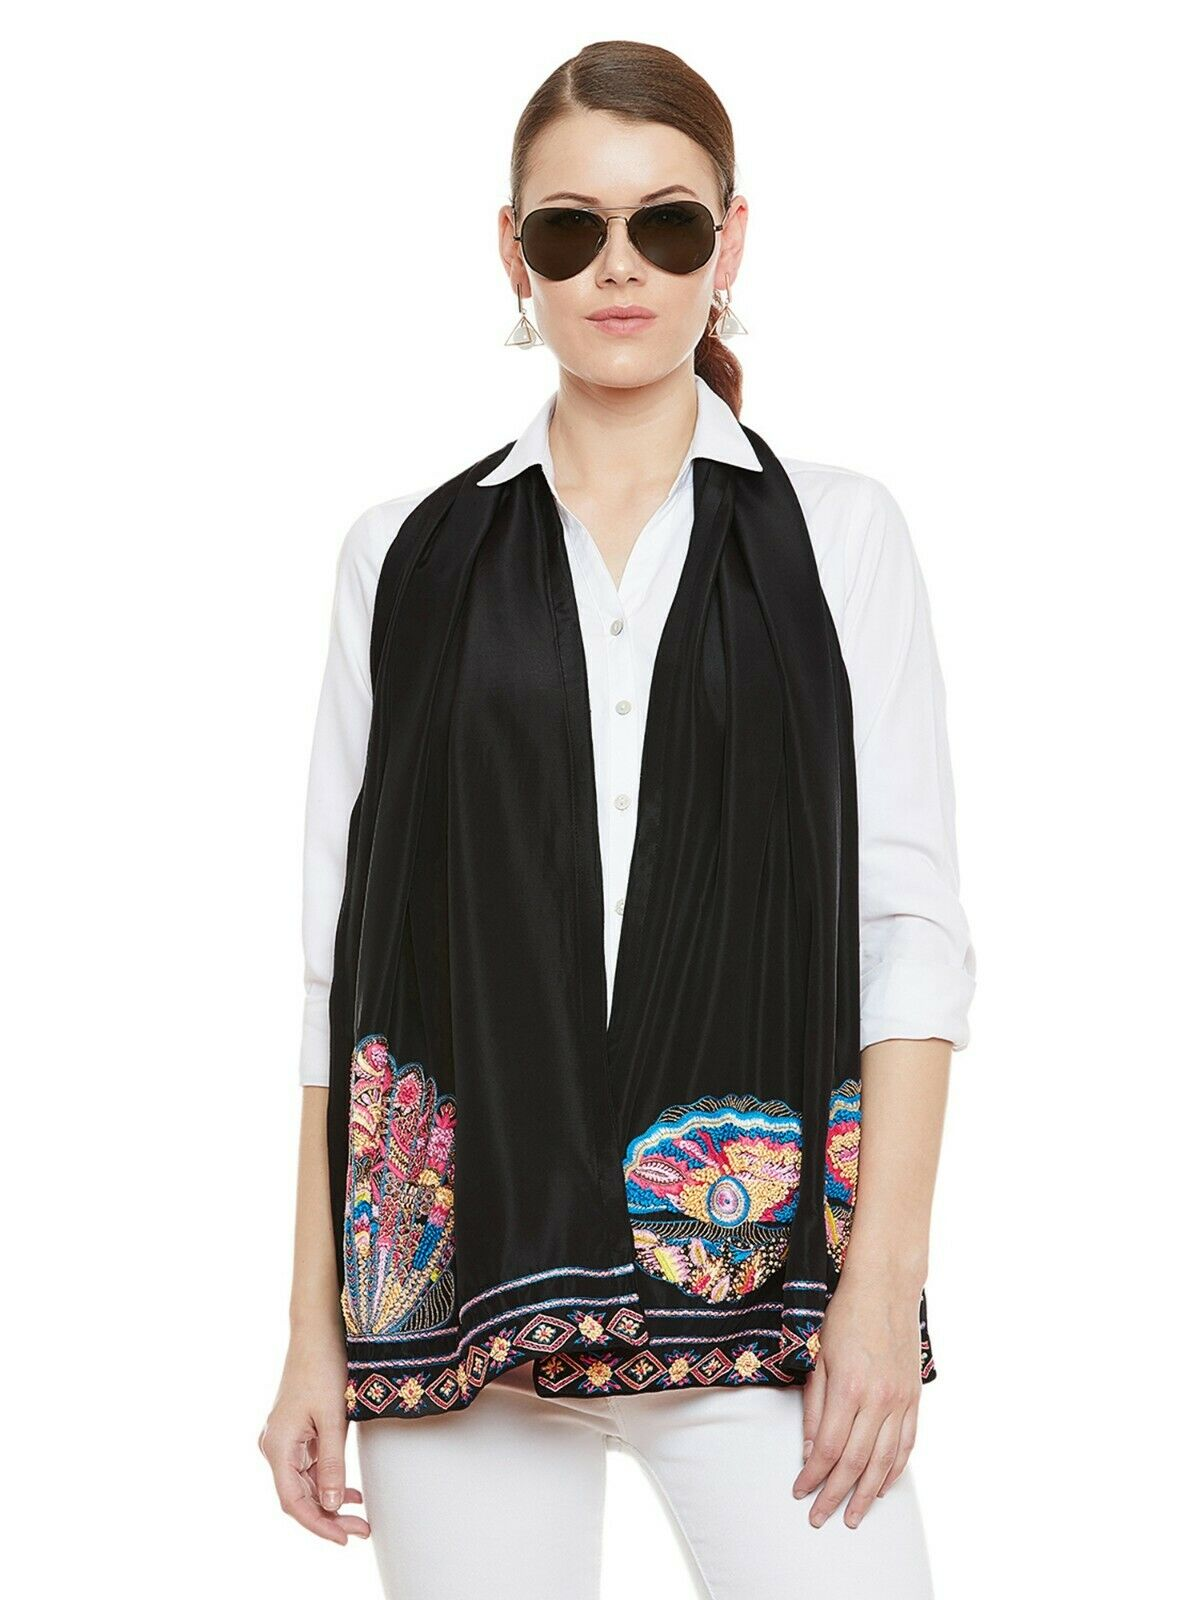 AMANDLA Fiery french knotted and tassel finished hand embroidered stole (black)